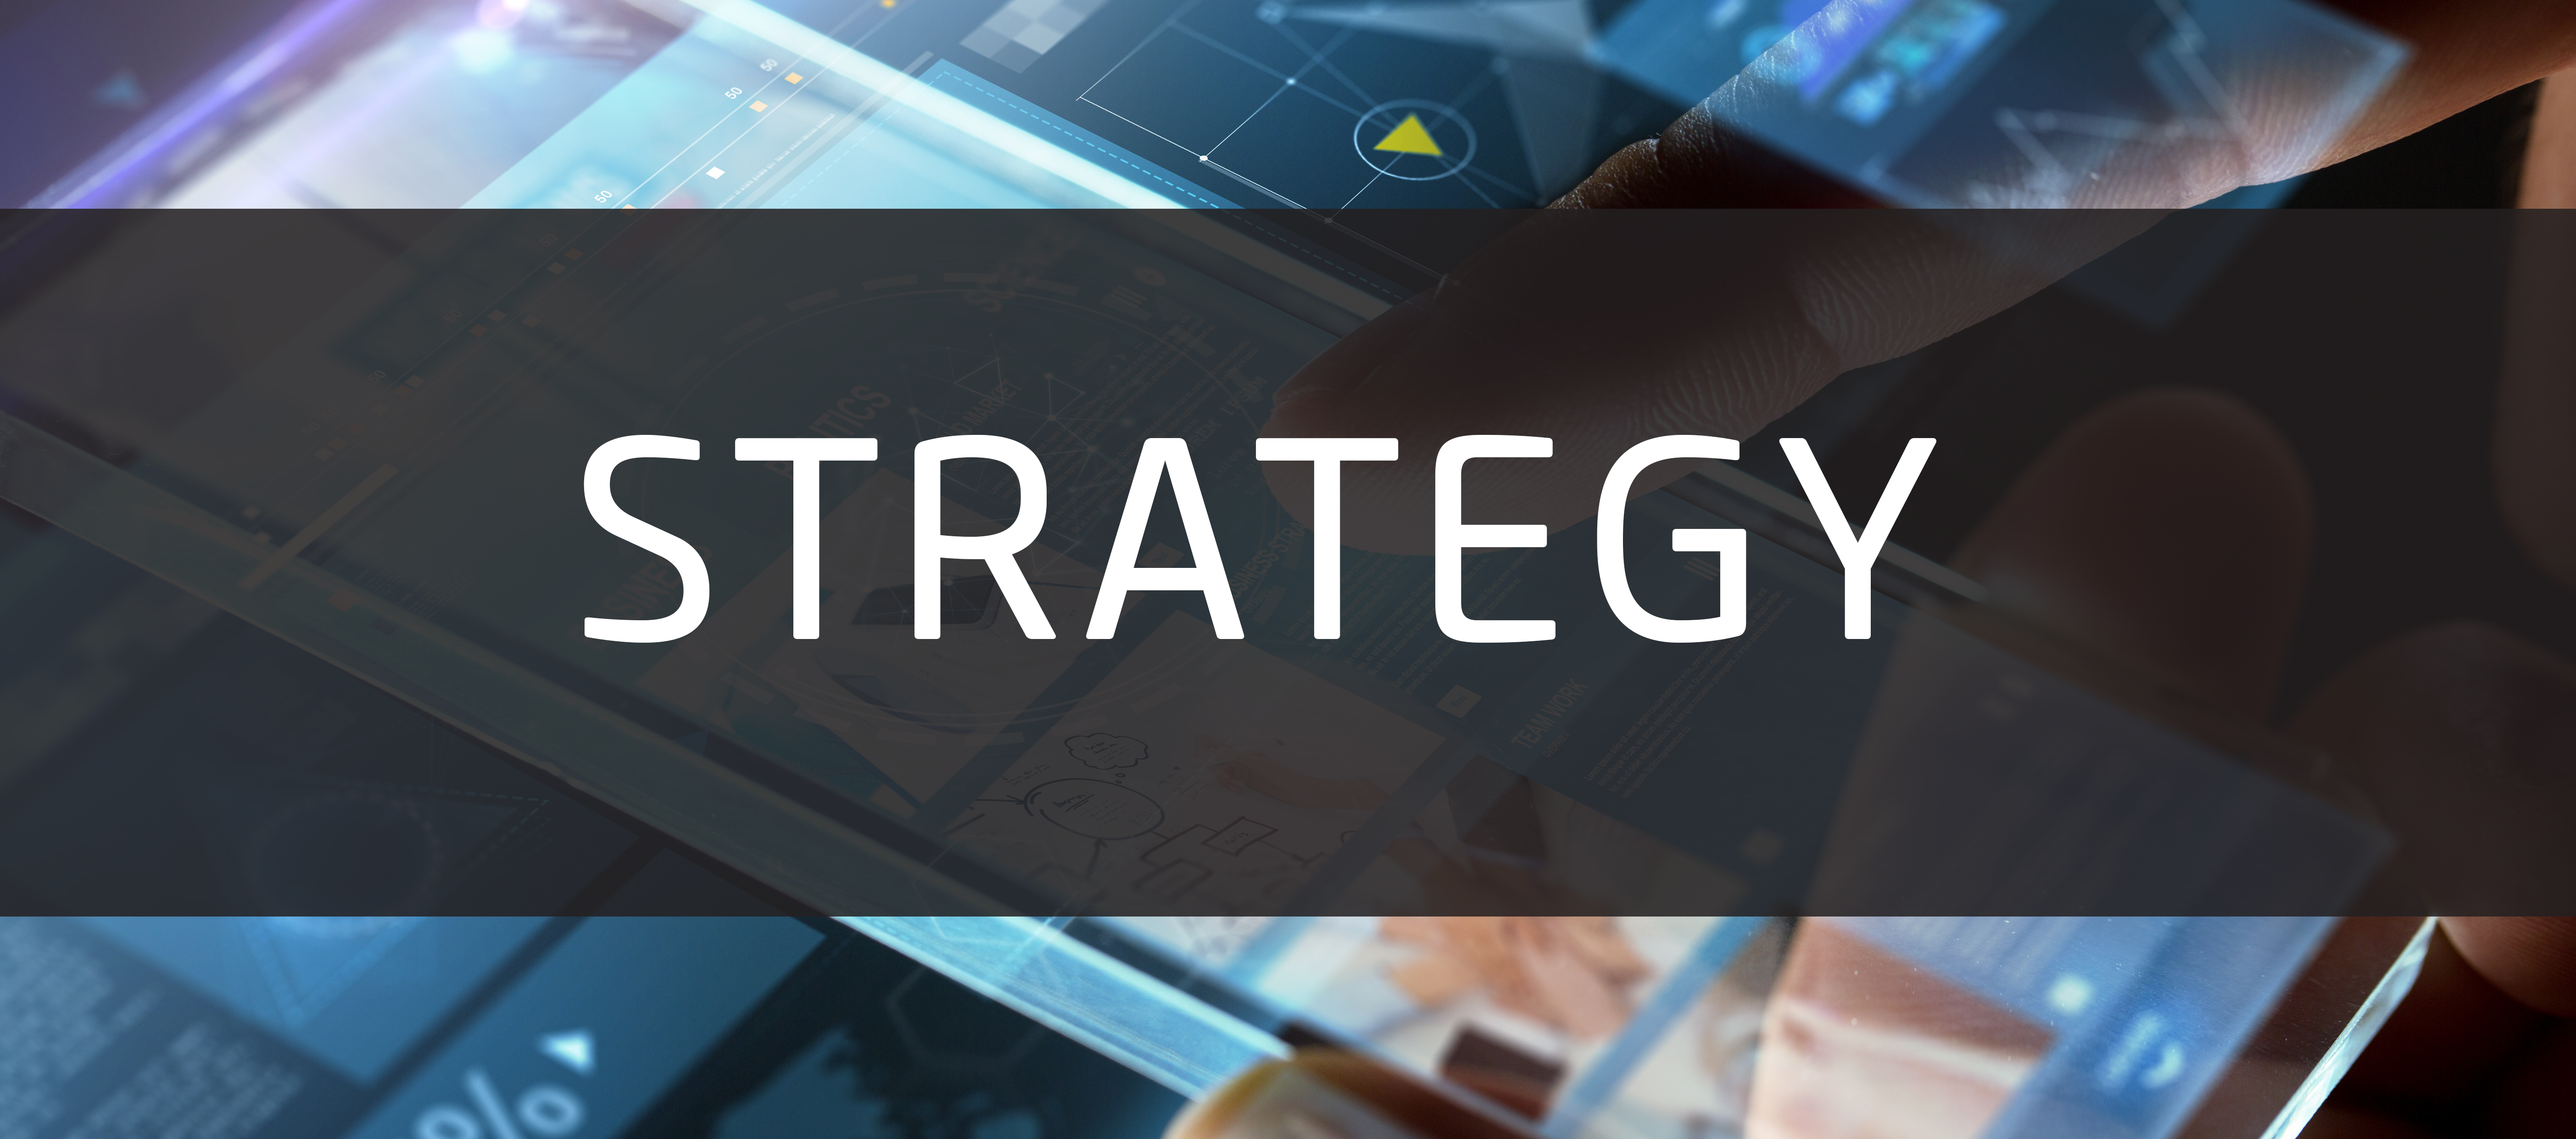 Strategy-MobileApps